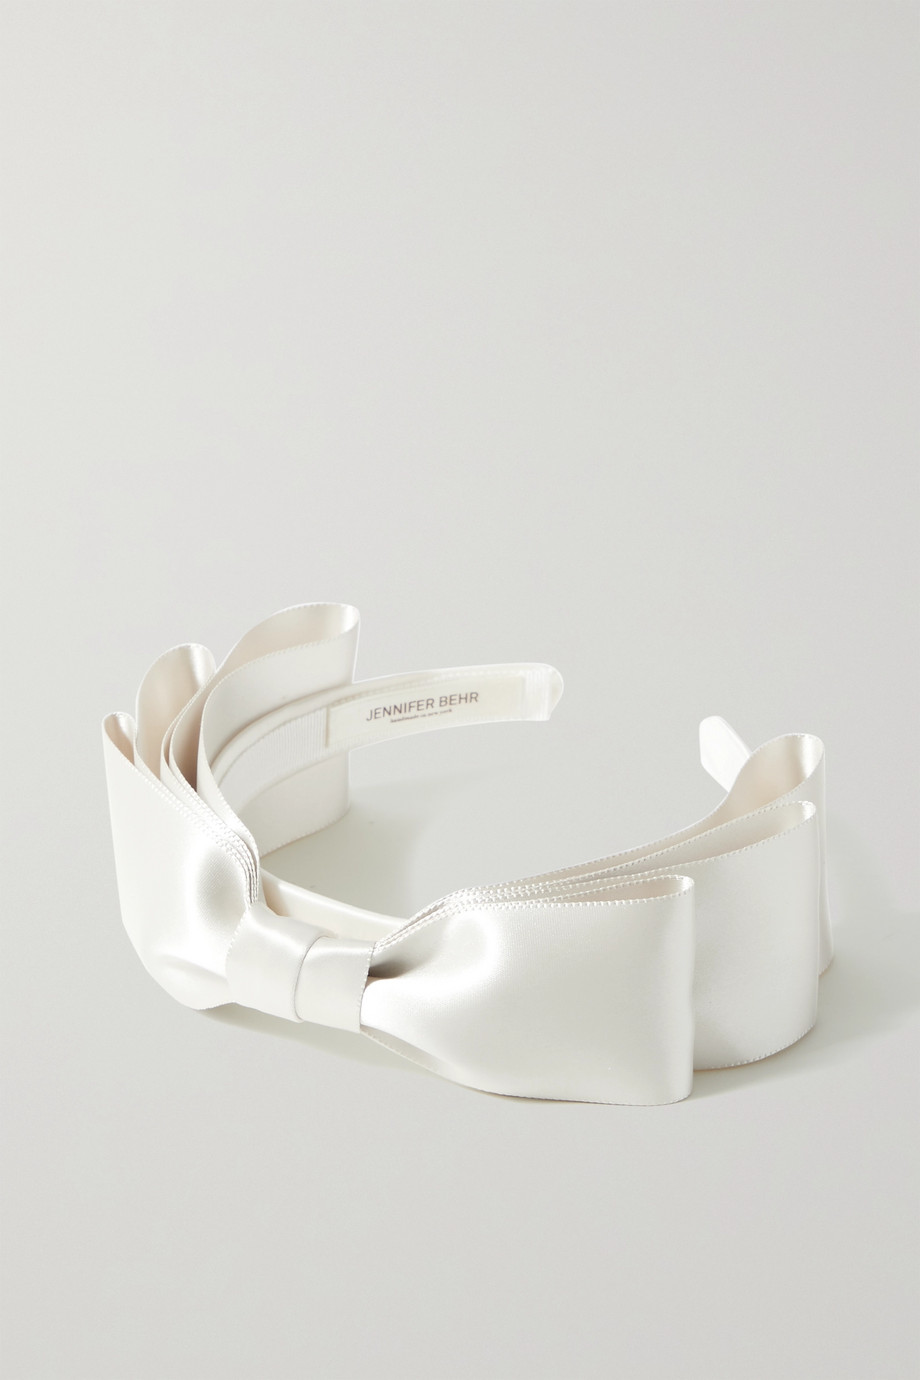 JENNIFER BEHR Katya bow-embellished satin headband